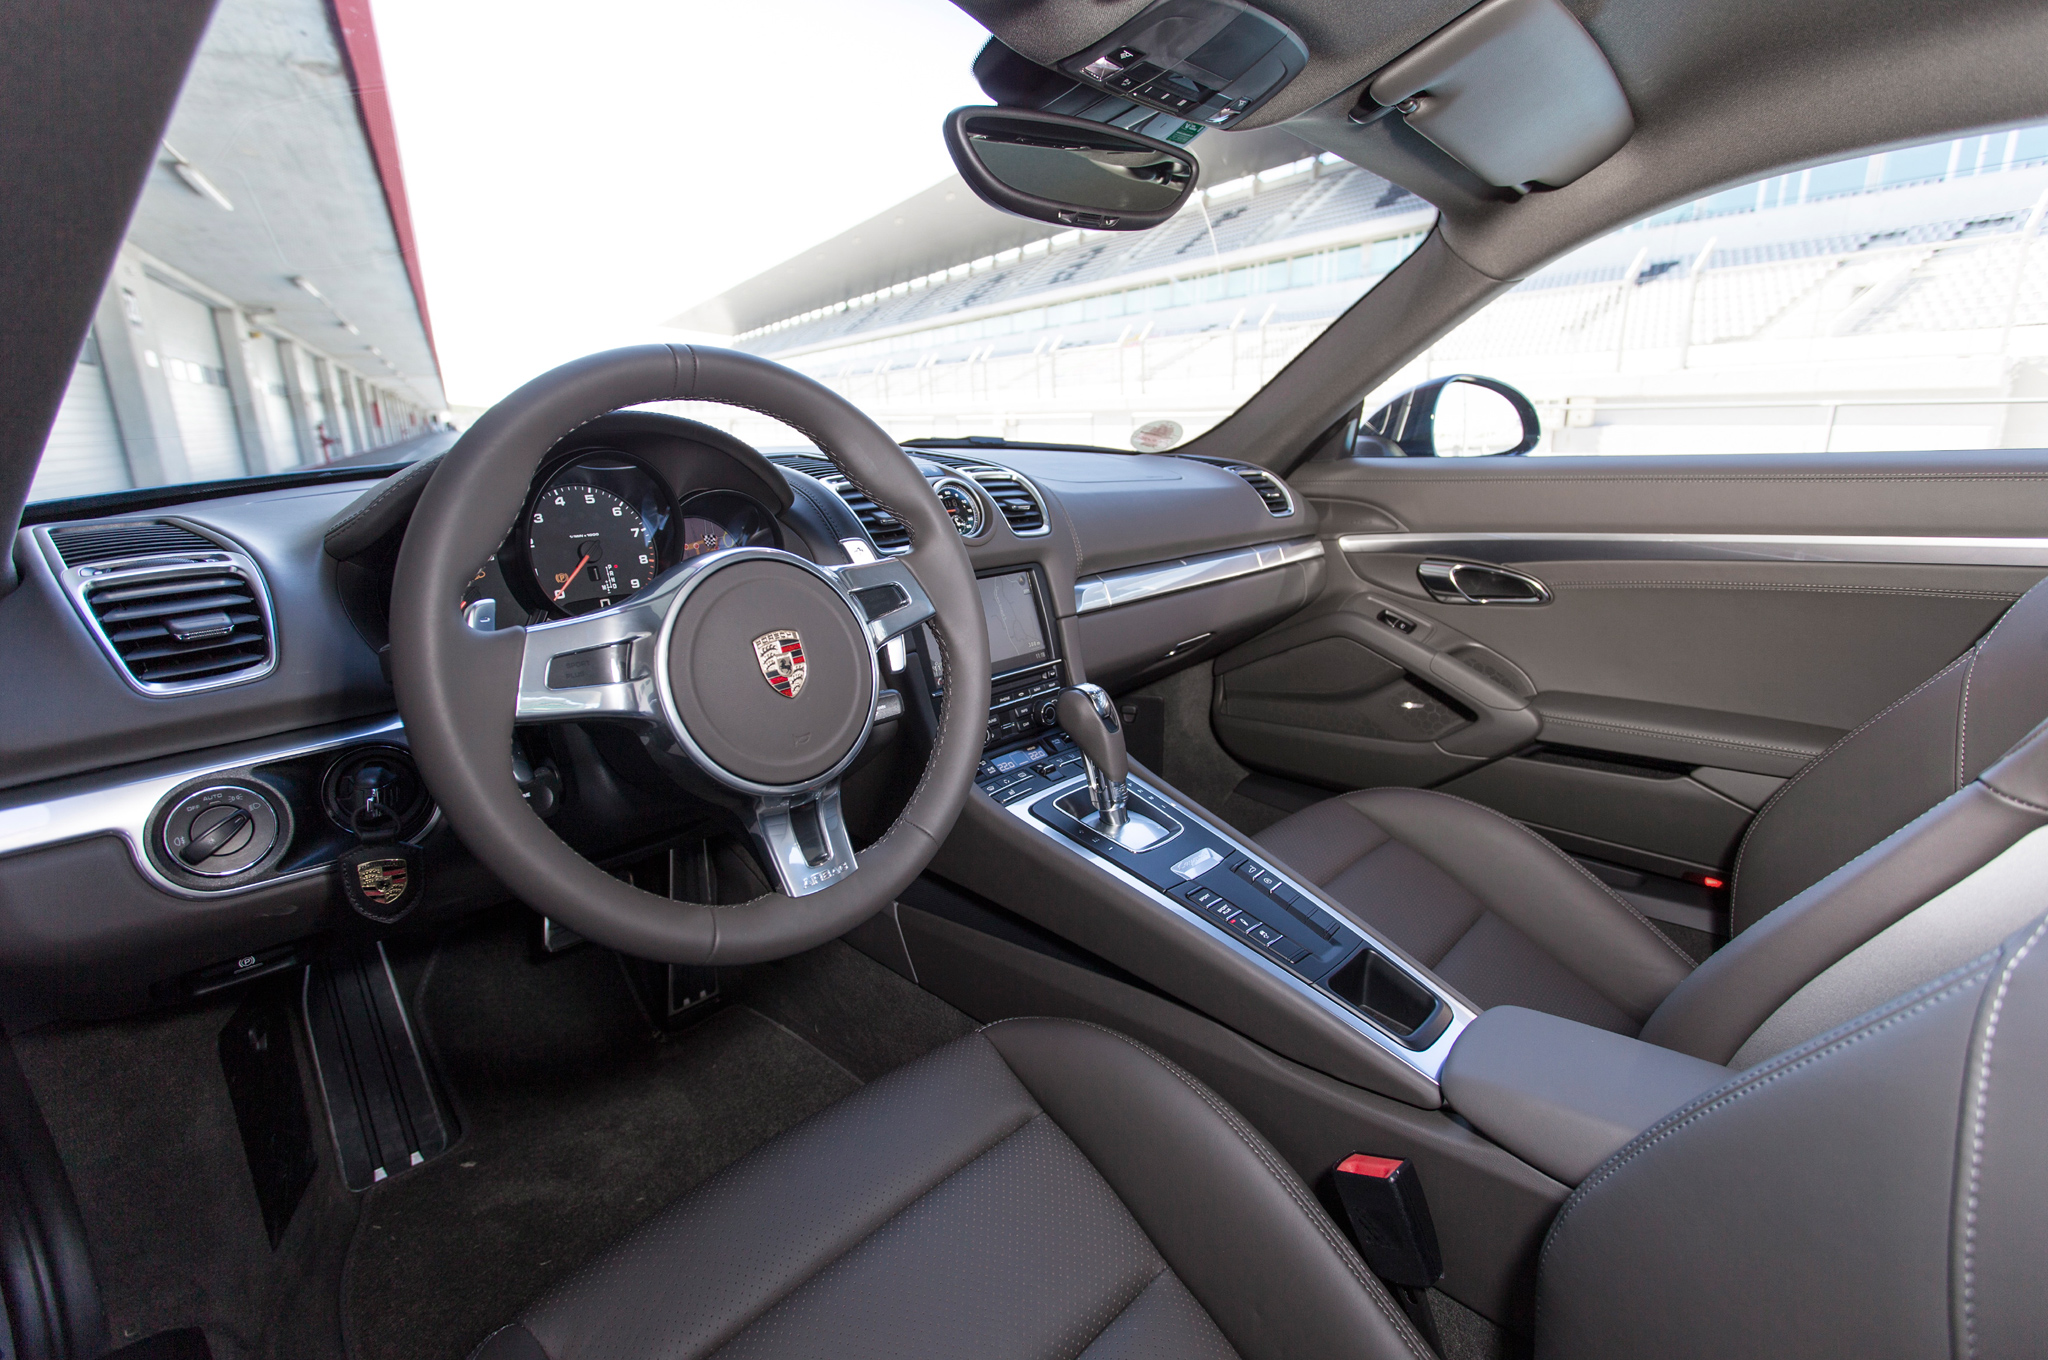 2014 Porsche Cayman Cockpit And Dashboard (View 7 of 8)